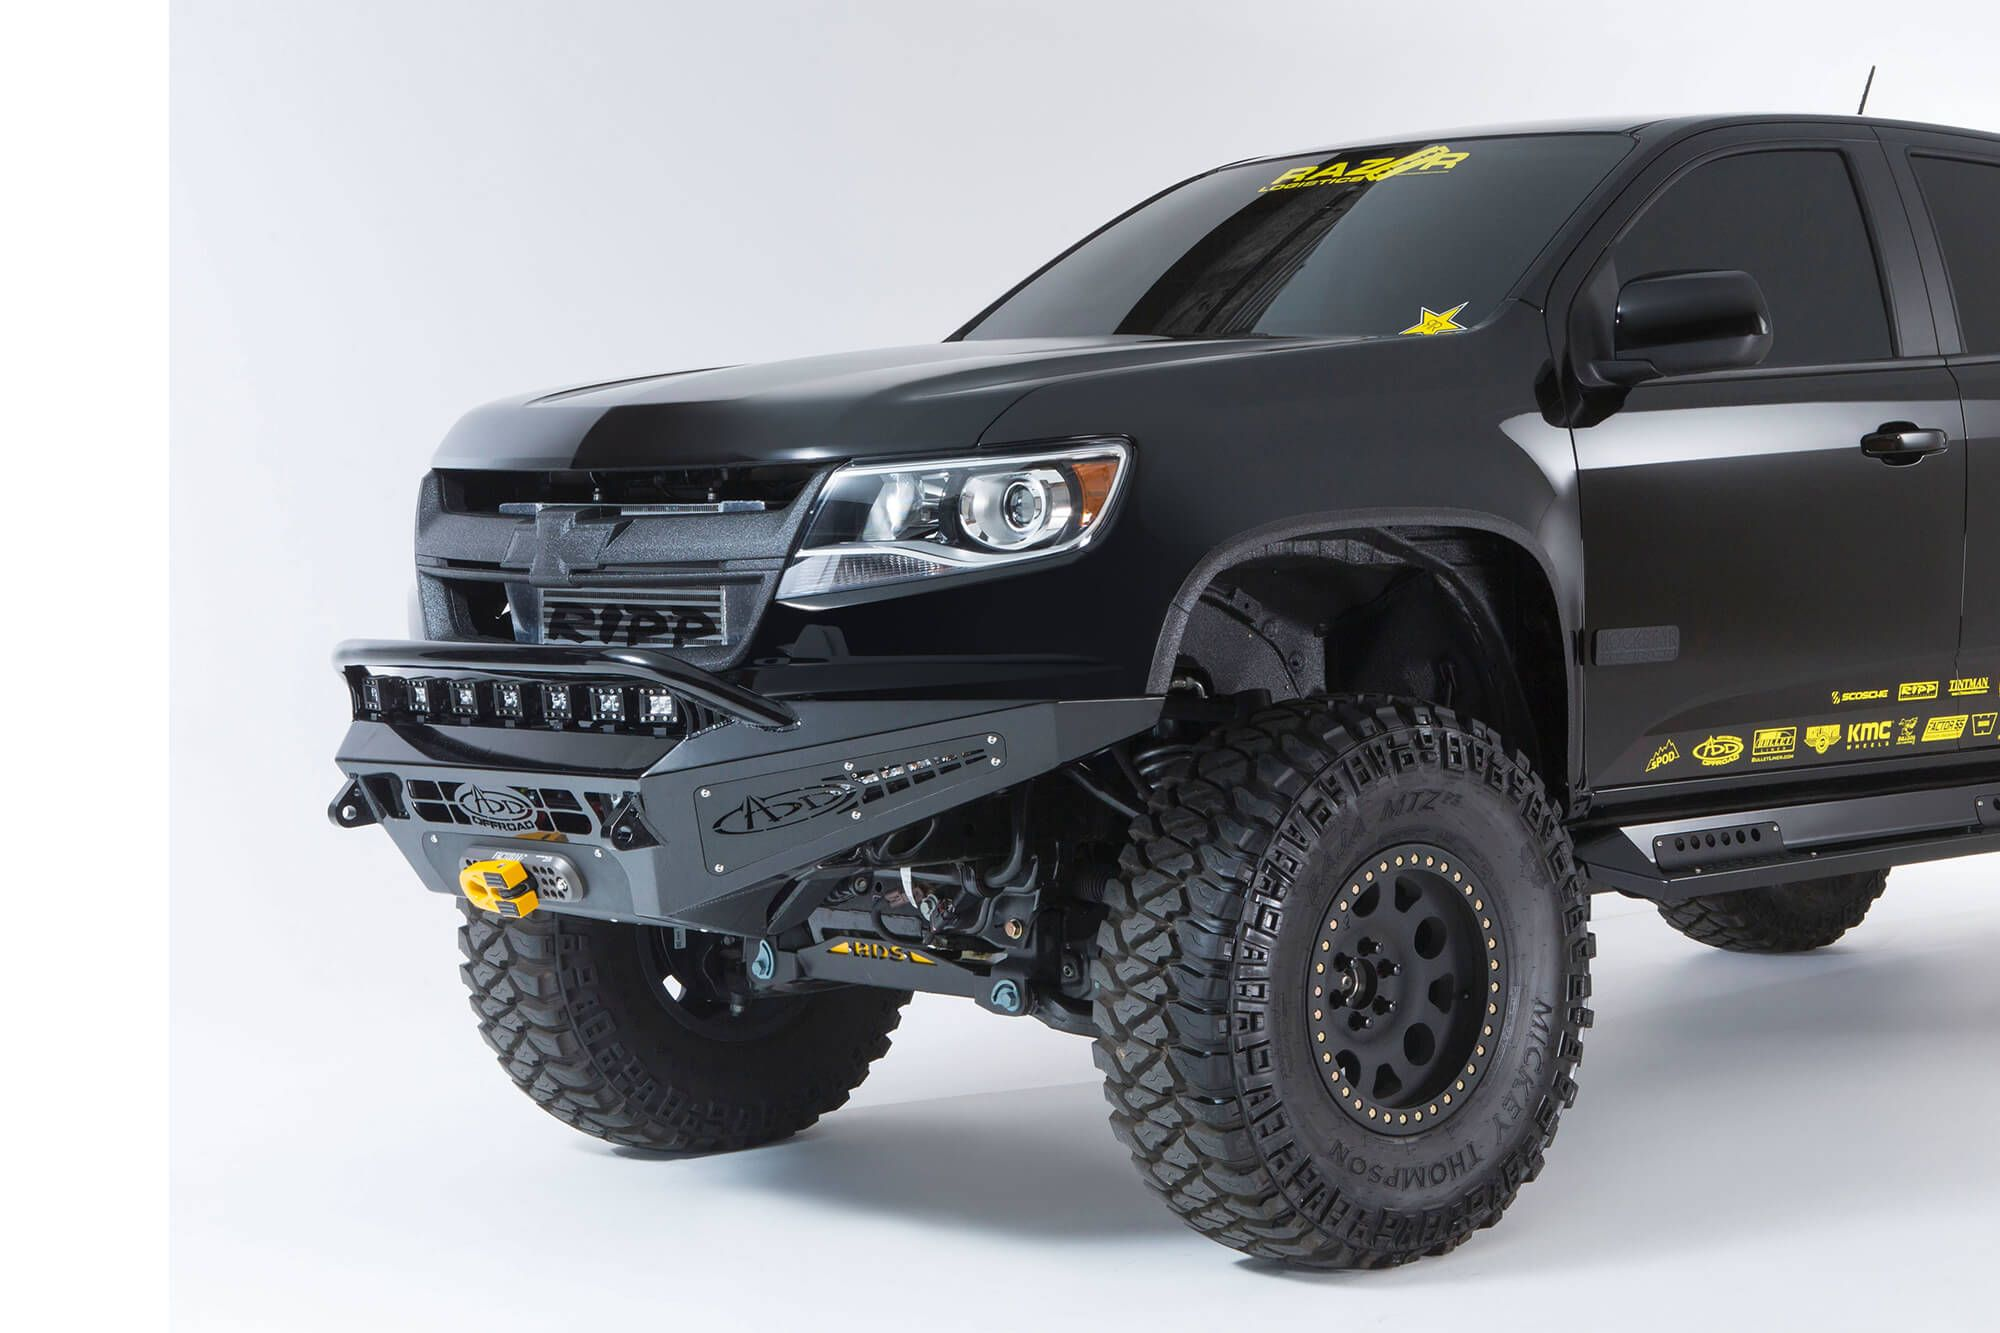 Shop 2015 chevy colorado bumpers here www addoffroad com 2015 chevy colorado pinterest 2015 chevy colorado chevy and 4x4